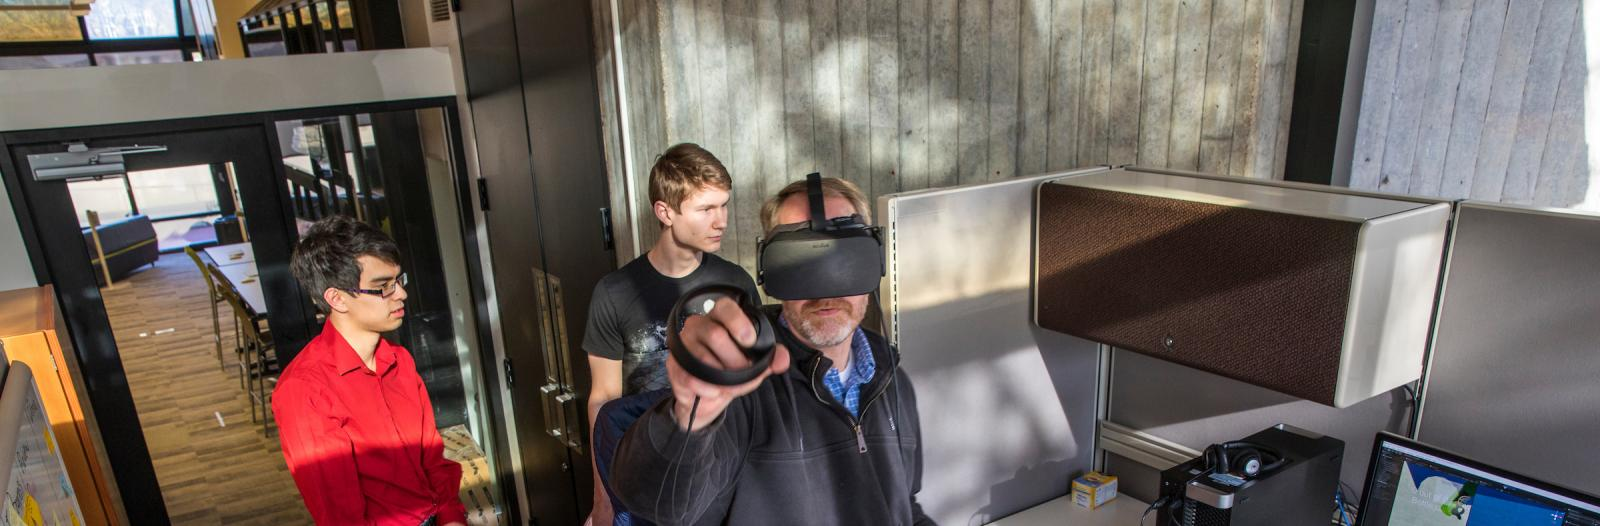 professor and students test virtual reality equipment